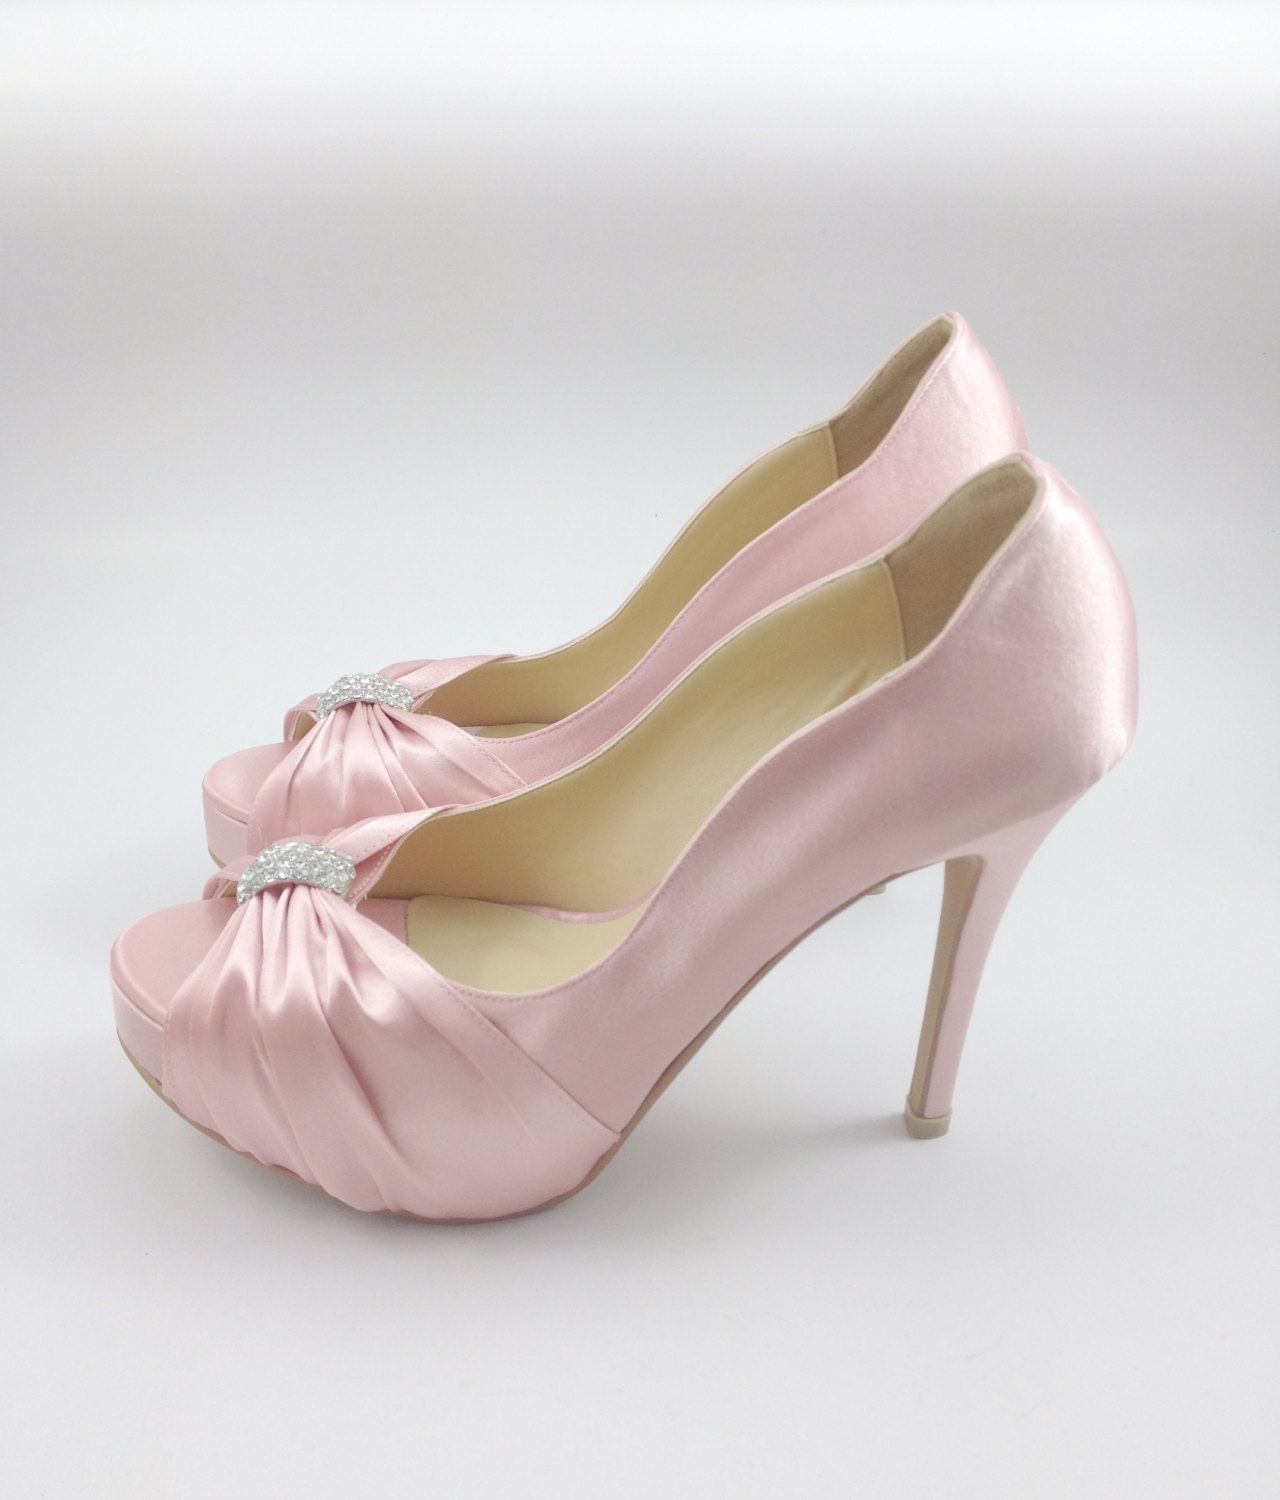 066a9d911cce Sweet Pink Wedding Shoes with Rhinestones Pastel Pink Bridal